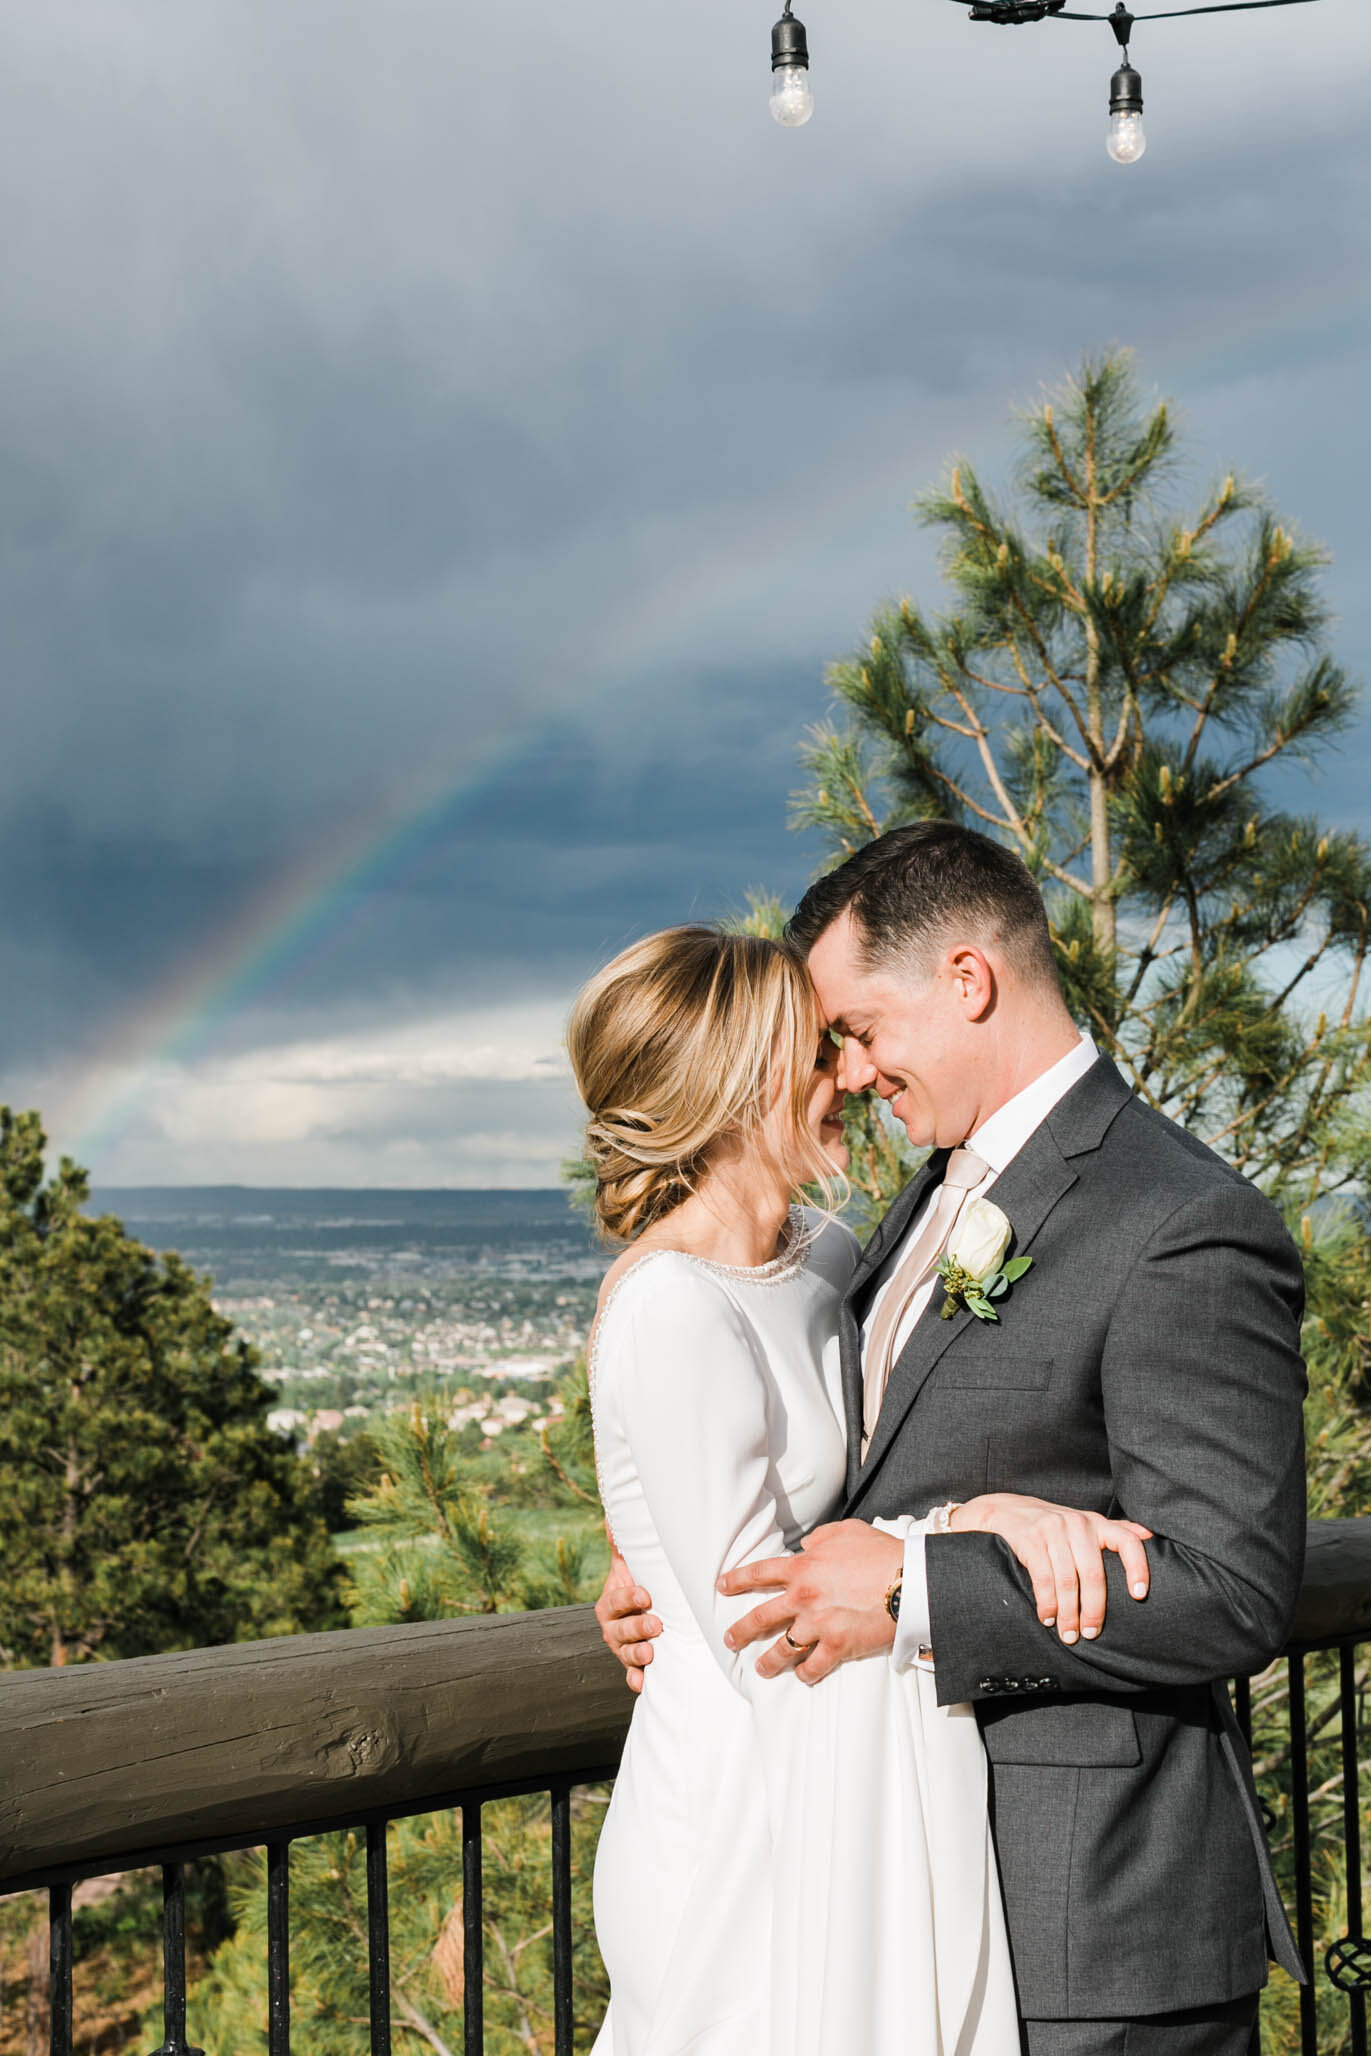 Immediately after the ceremony, this beautiful rainbow appeared across the sky.  Definitely a sign that these two were meant to be.